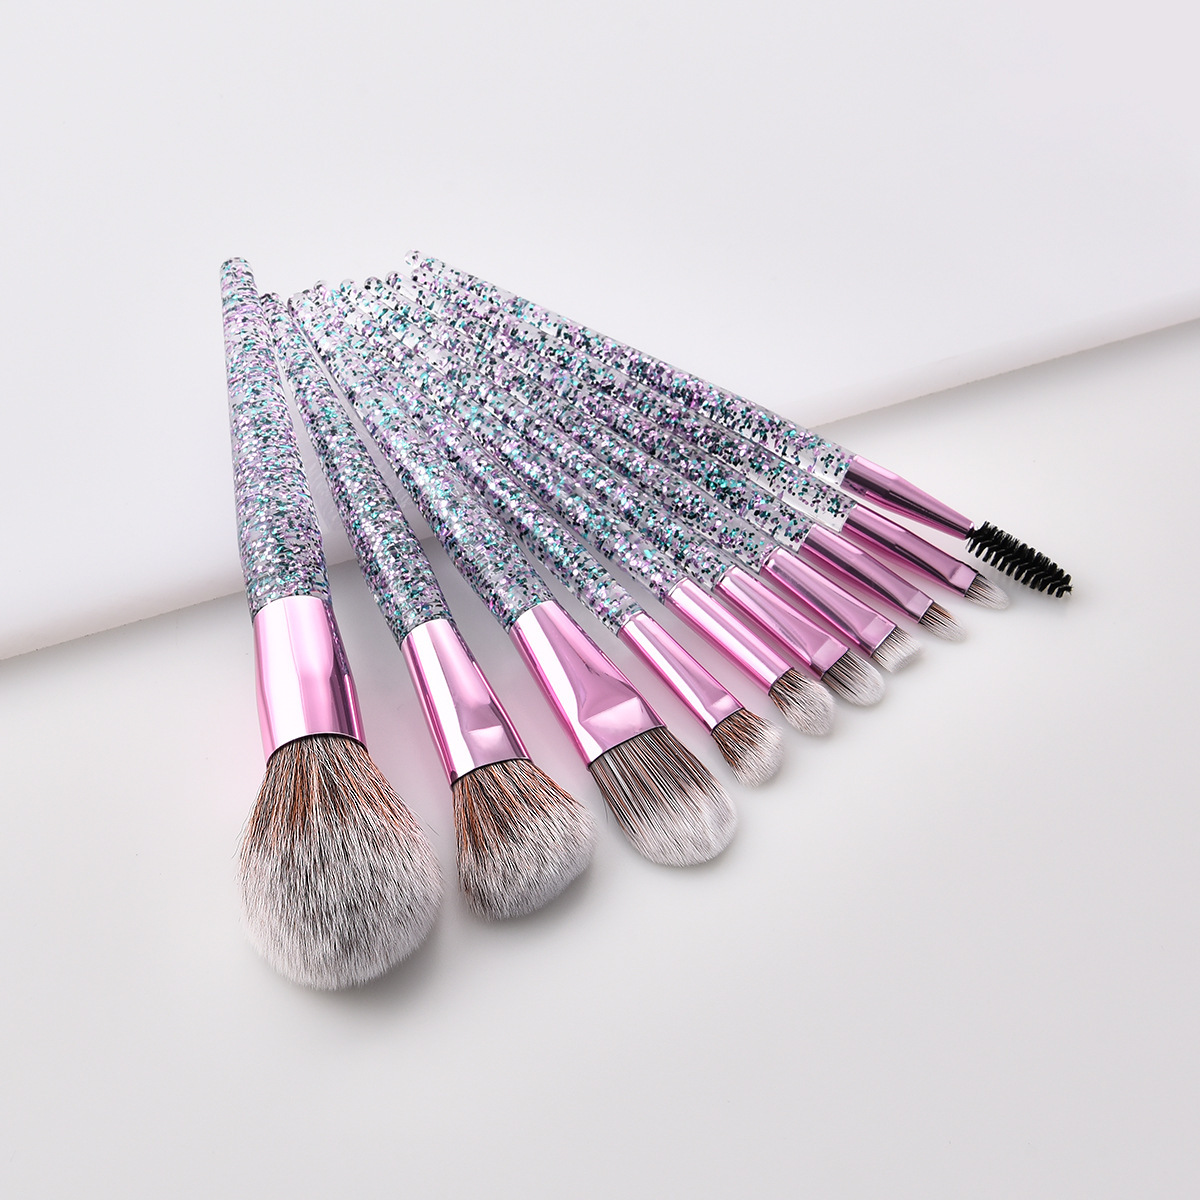 10 transparent handle glitter brushes powder foundation makeup brush collection